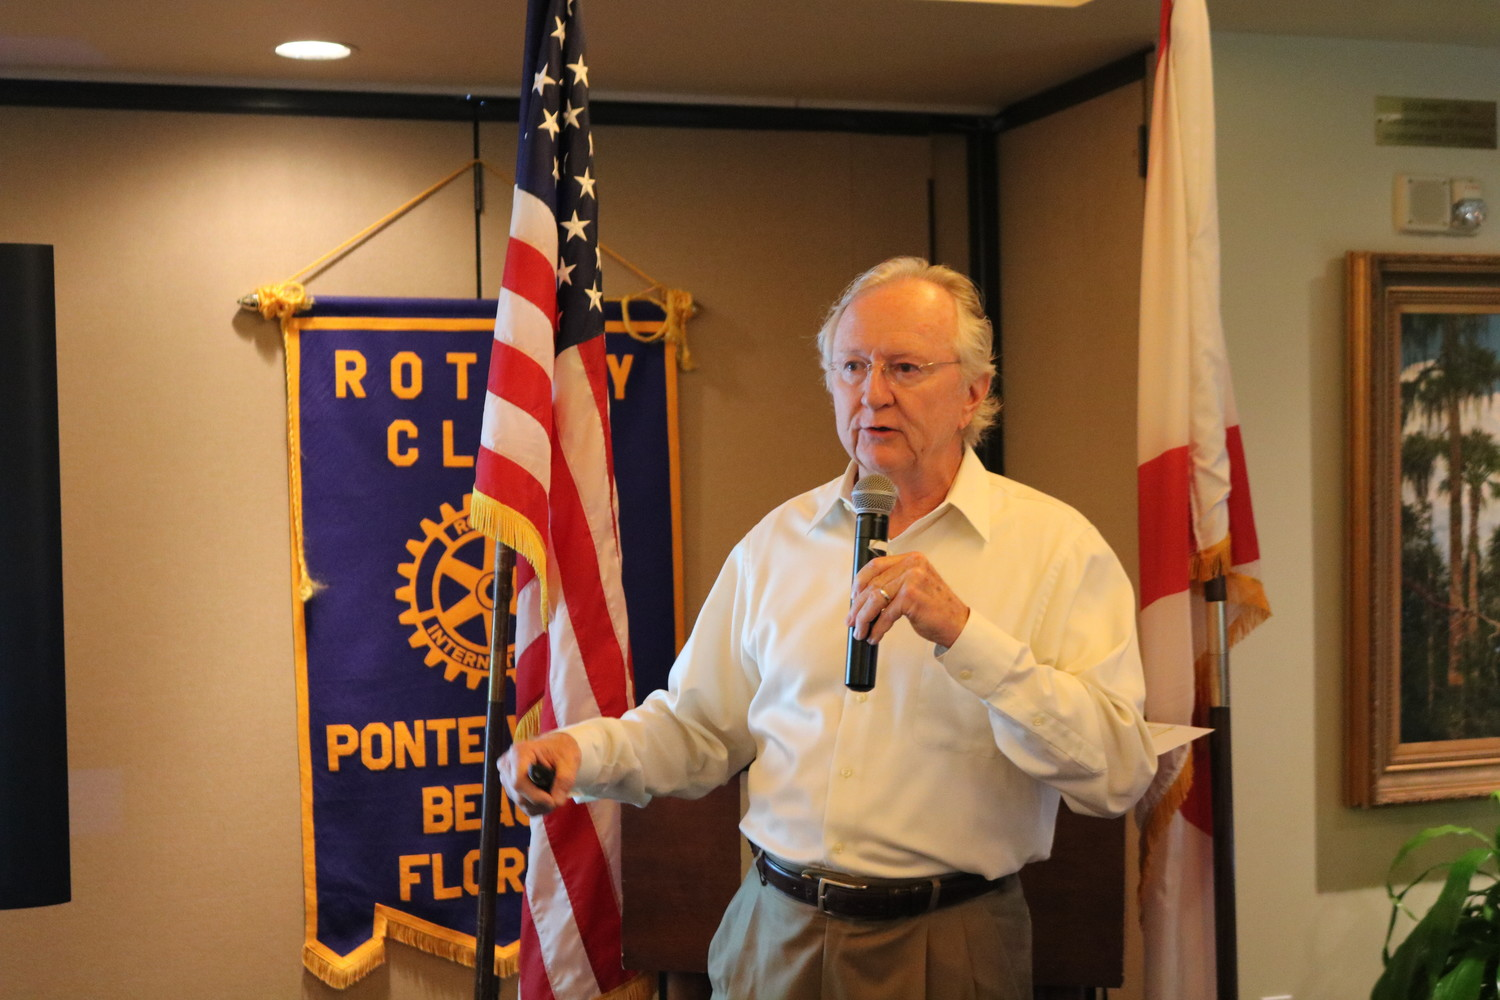 CTTF member Greg Leonard addresses the Rotary Club of Ponte Vedra Beach at Marsh Landing Country Club on May 31.